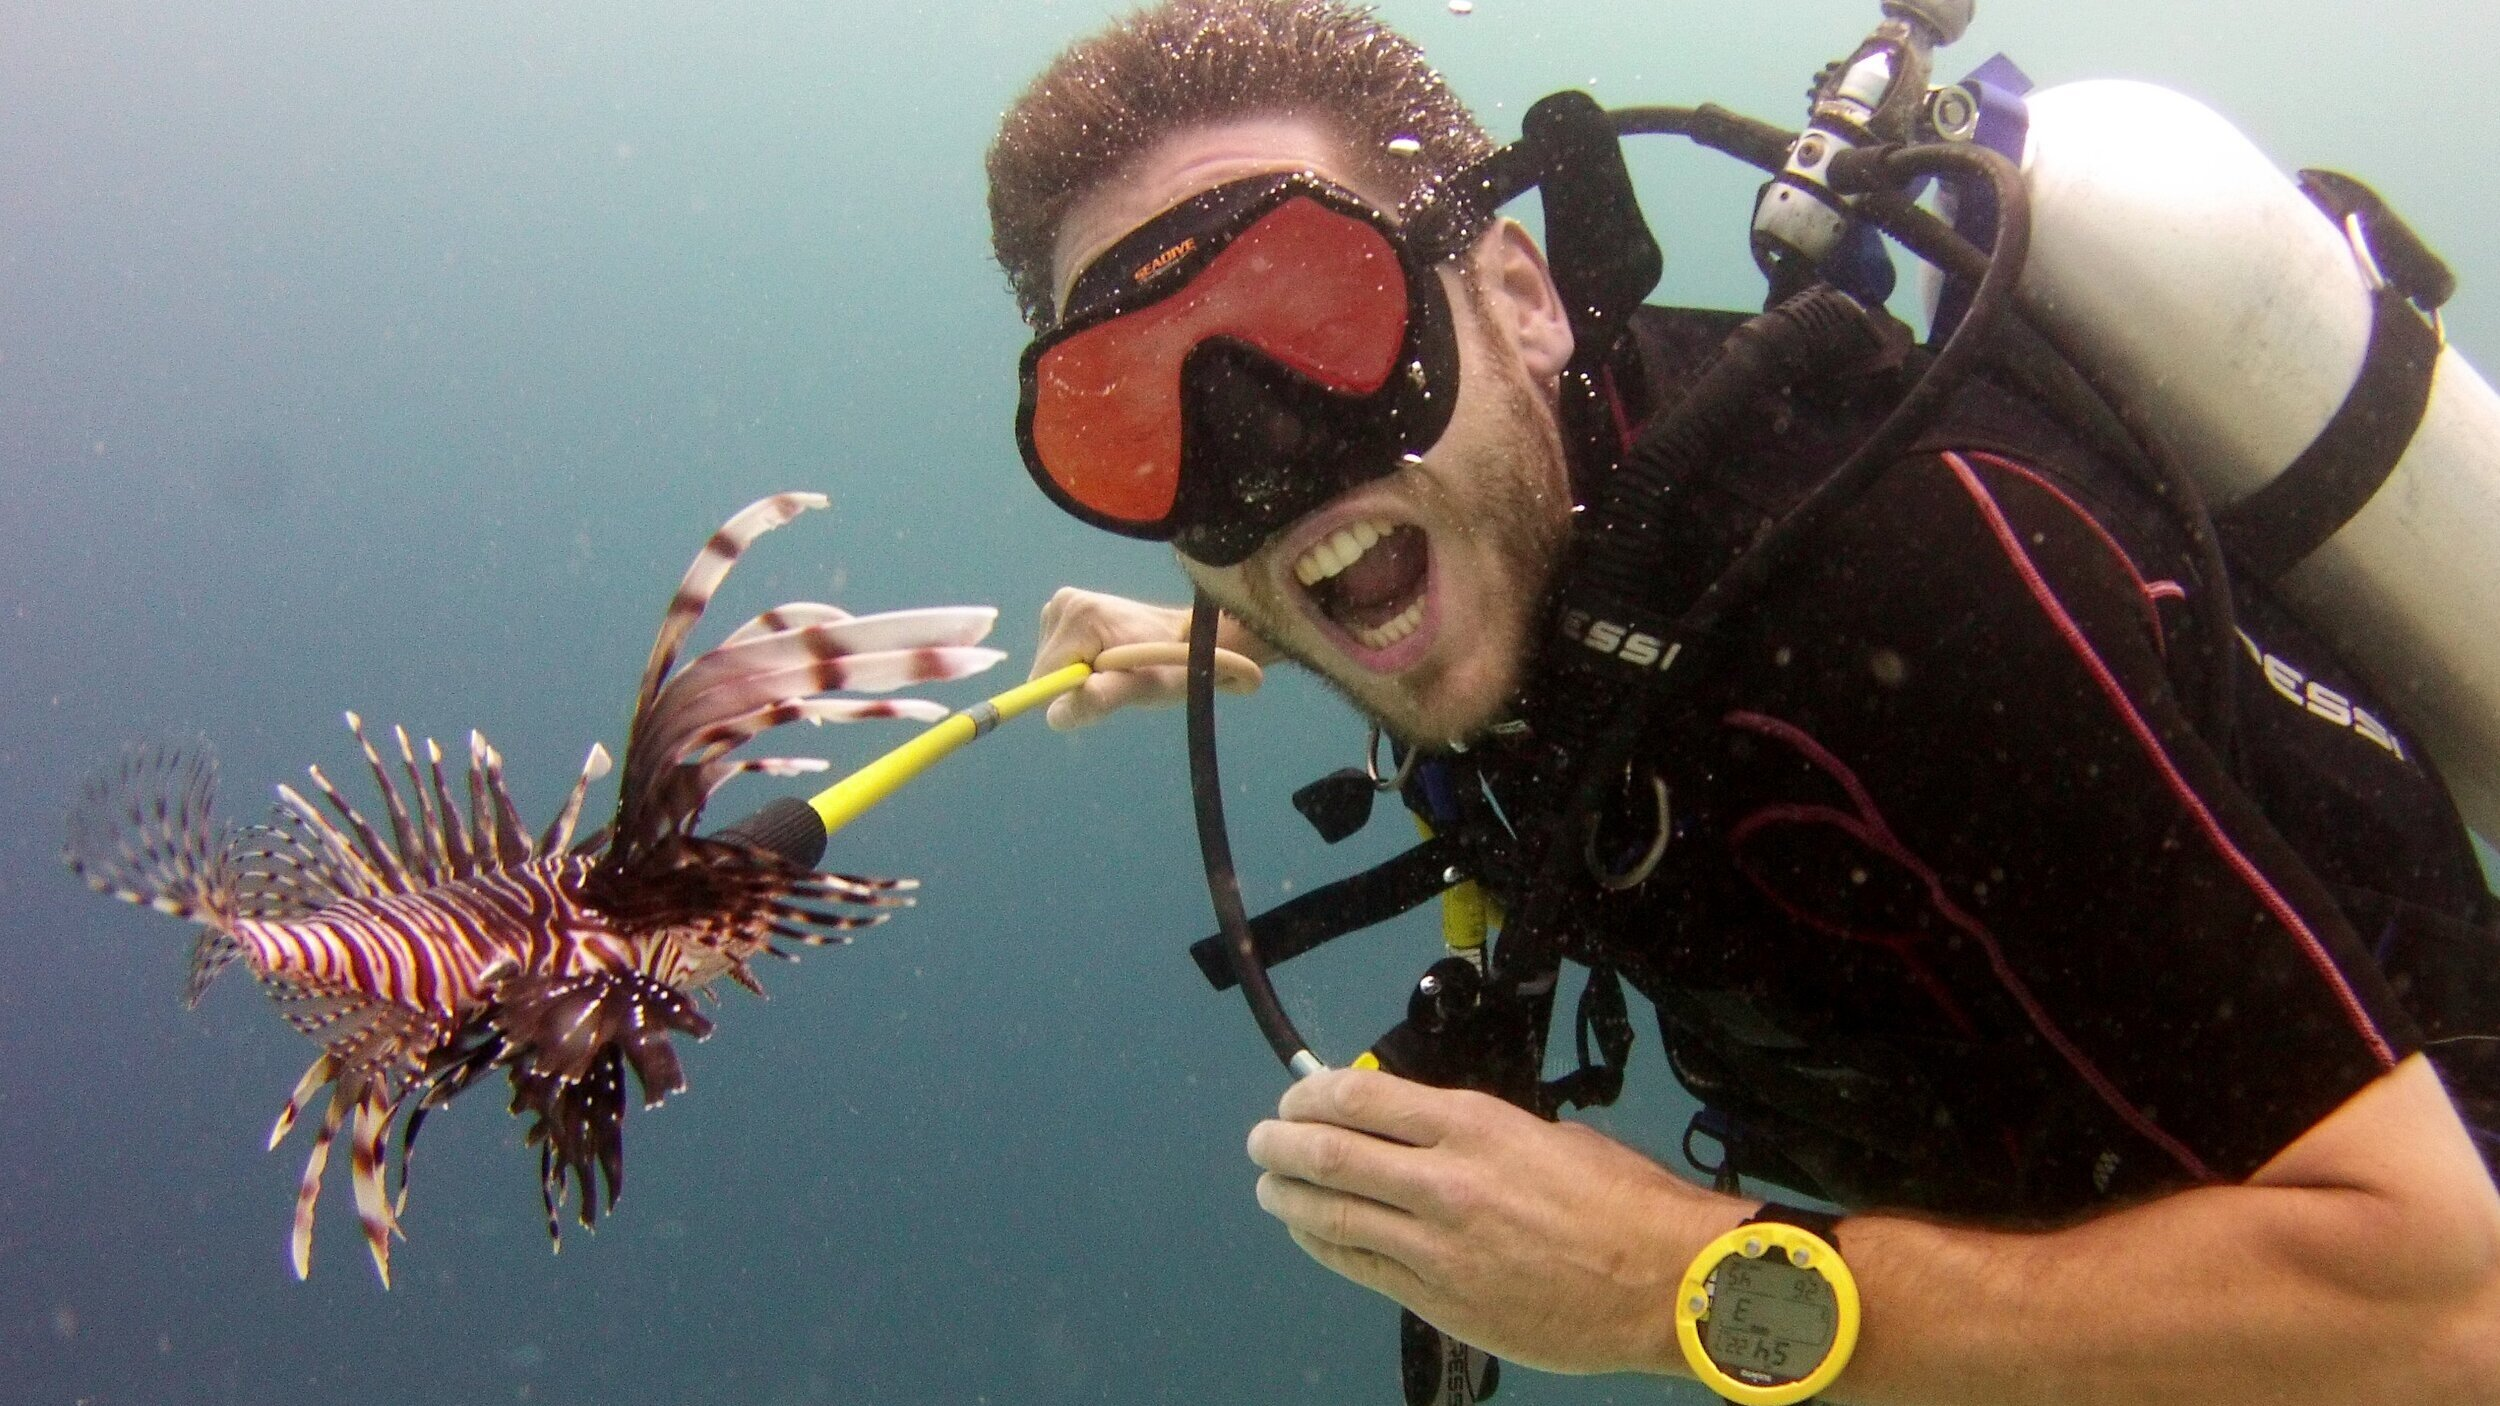 Hunt Lionfish - Protect Curacao Reef